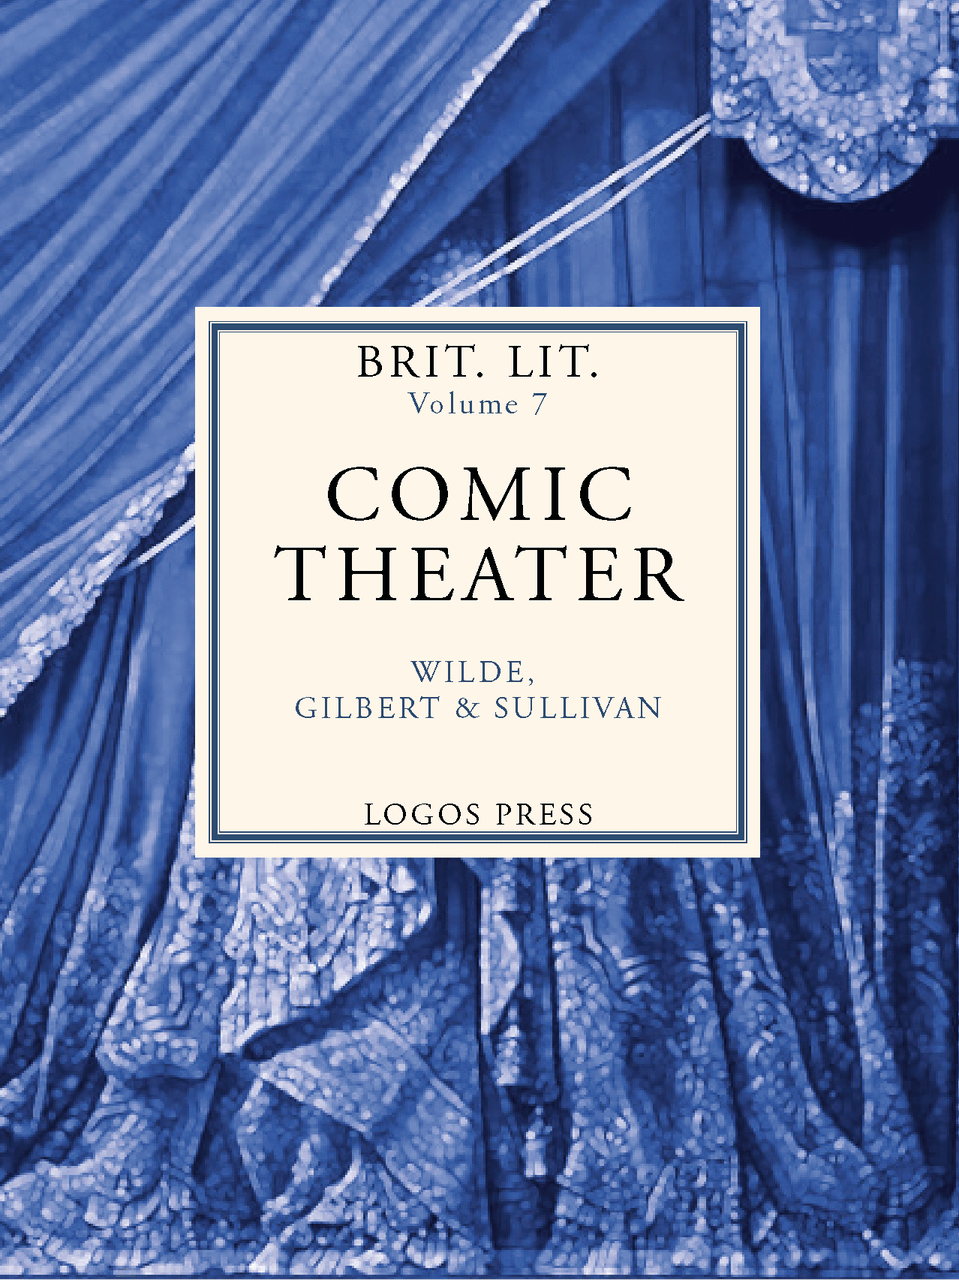 Brit Lit Vol. VII – Comic Theater